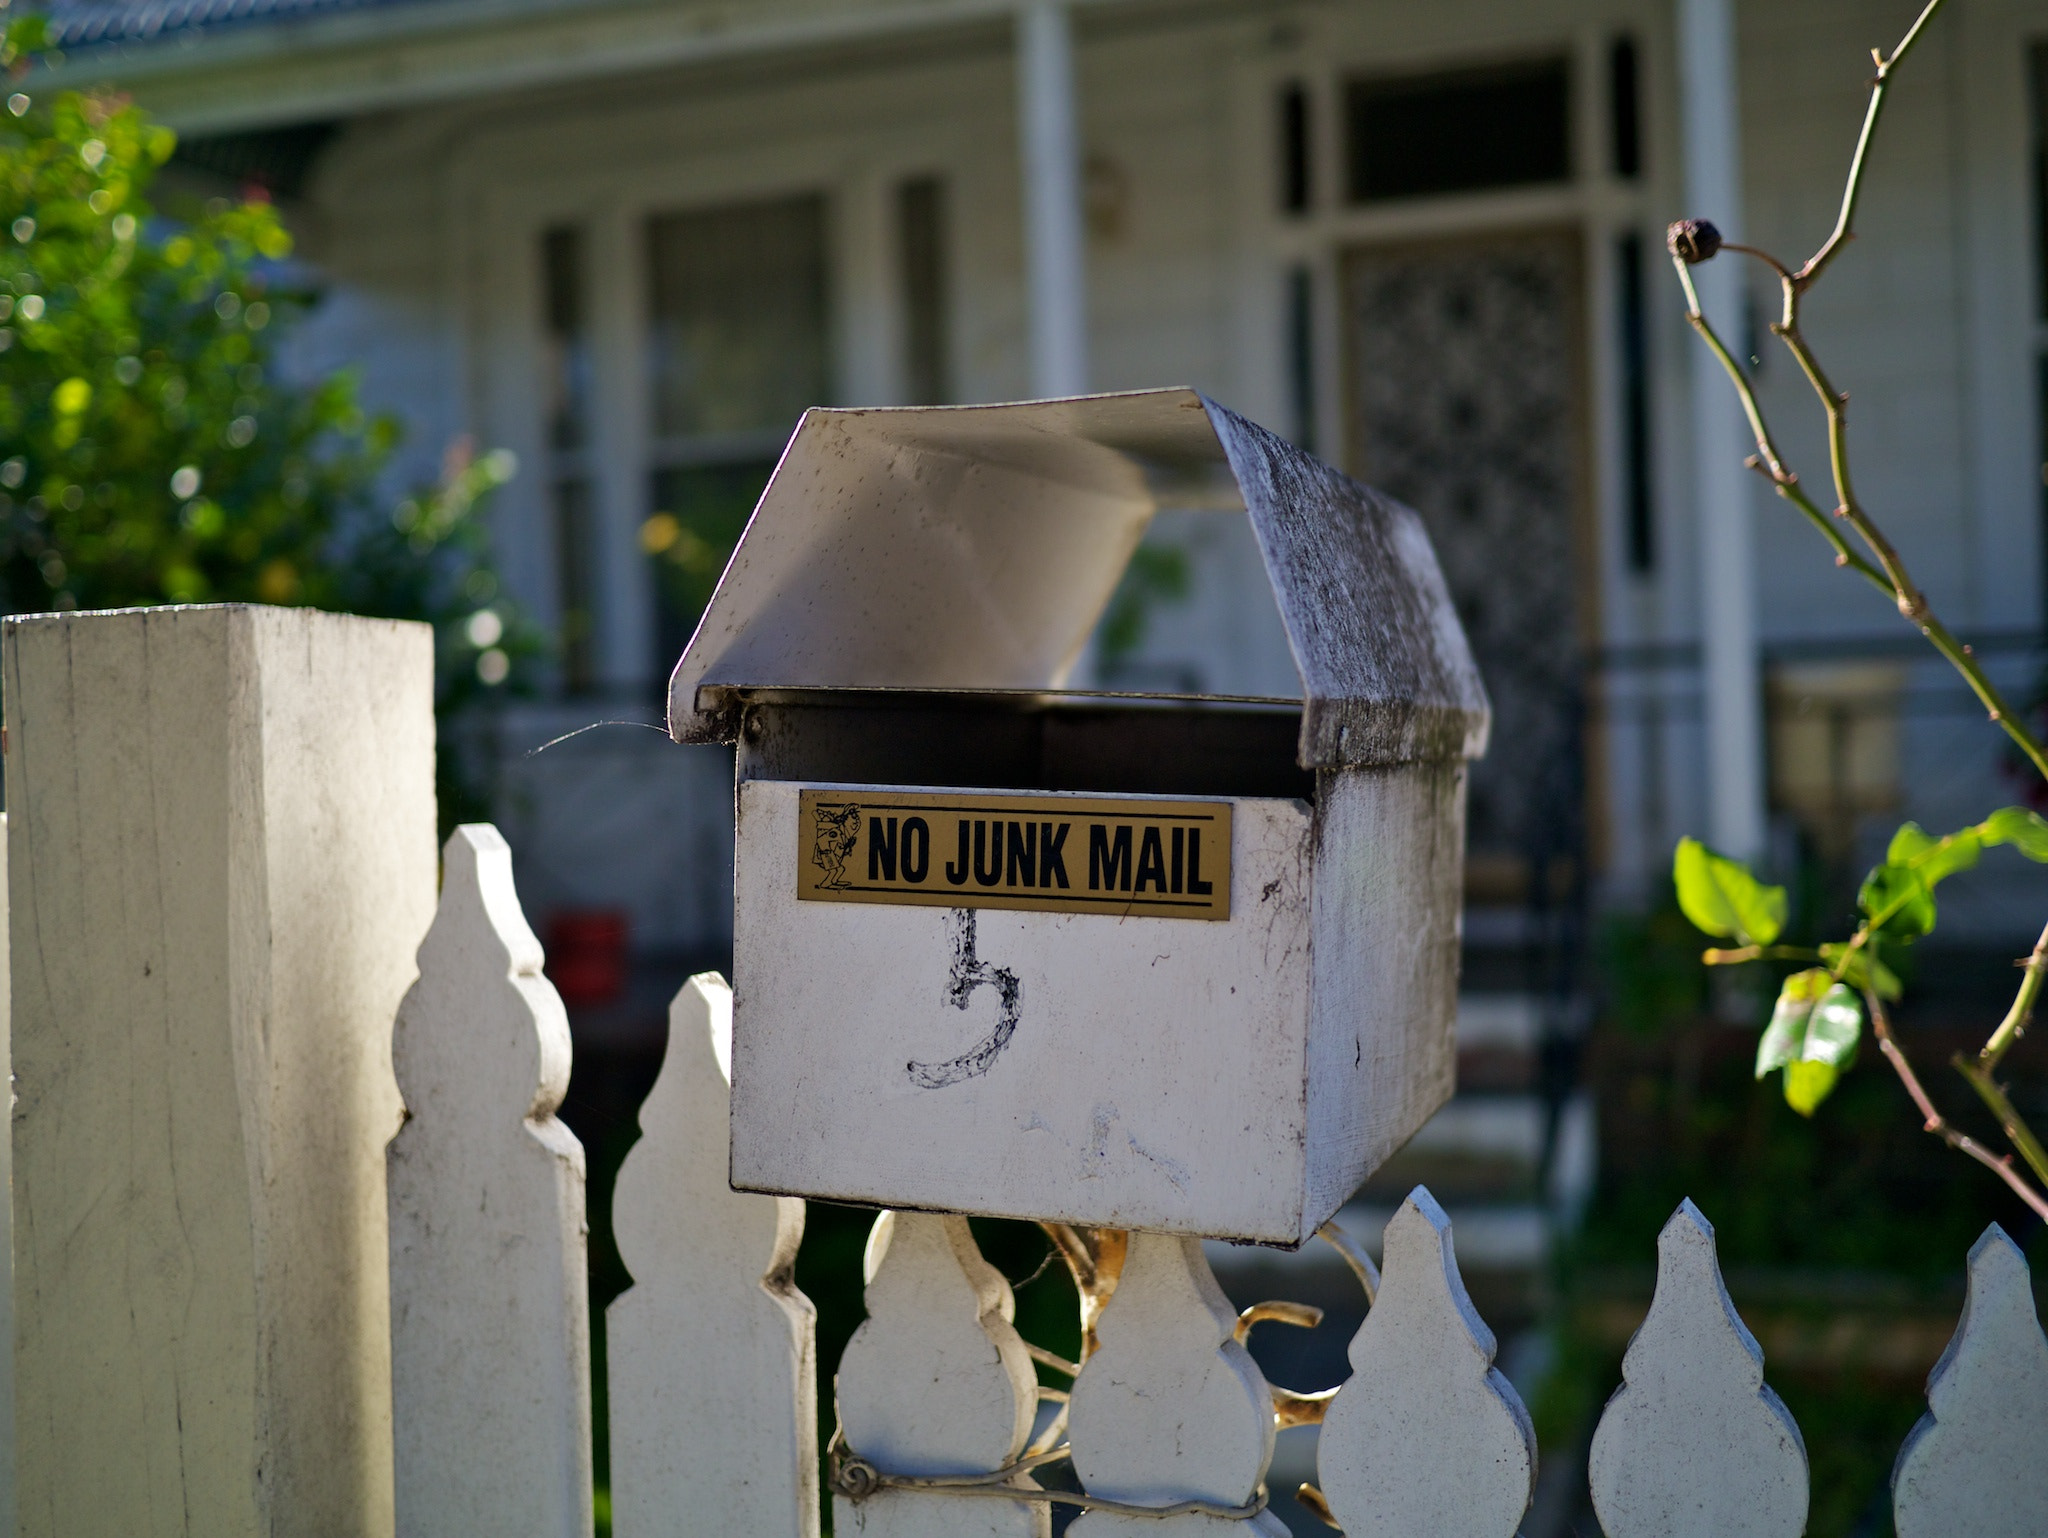 Photograph No Junk Mail by Steve Androulakis on 500px